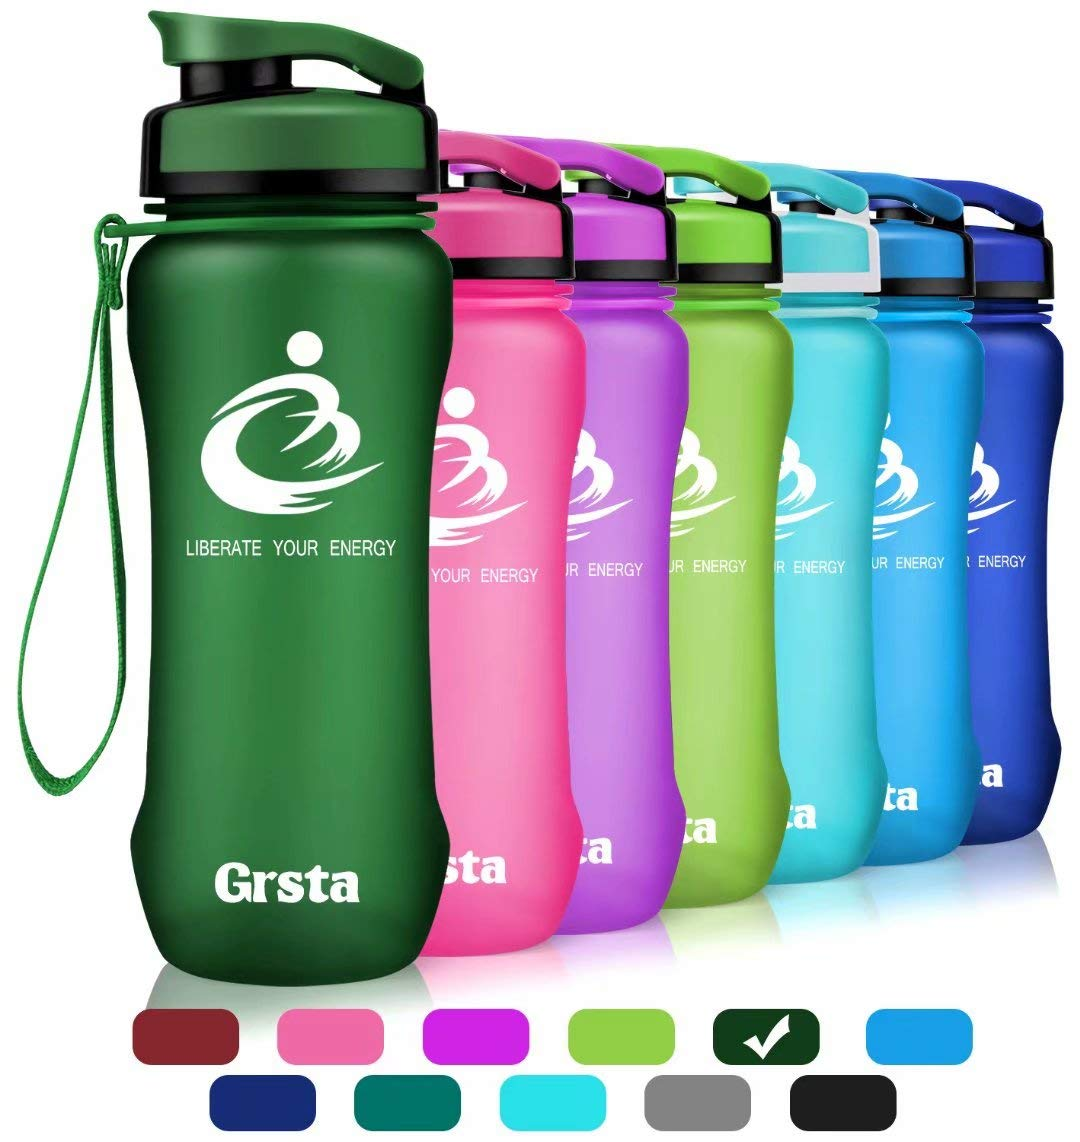 Grsta Best Sports Water Bottle Wide Mouth Leak Proof BPA Free/& Eco-Friendly Plastic Water Bottle for Outdoor//Running//Camping//Gym Flip Top /& Filter 1-Click Open 32oz/&27oz/&20oz